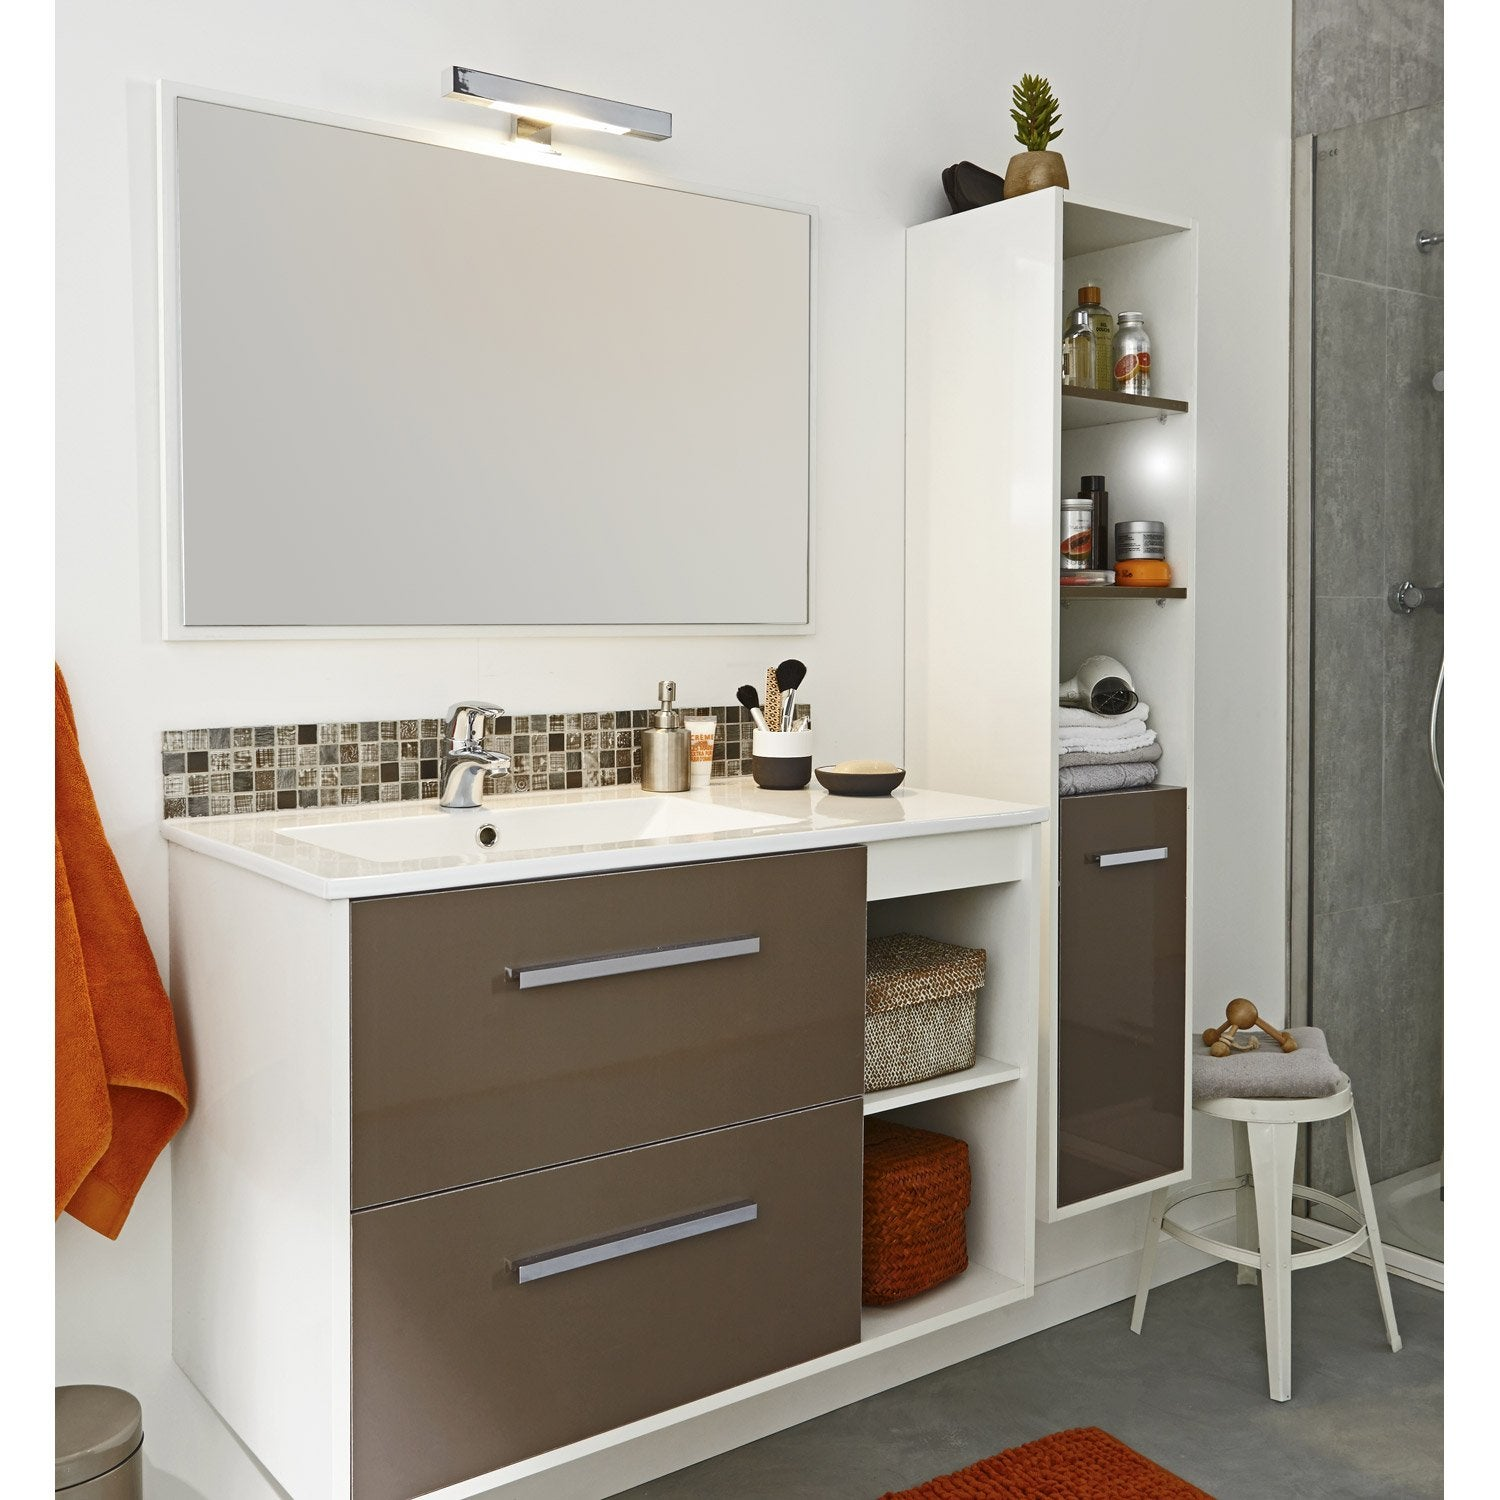 echelle salle de bain leroy merlin avec des id es int ressantes pour la. Black Bedroom Furniture Sets. Home Design Ideas